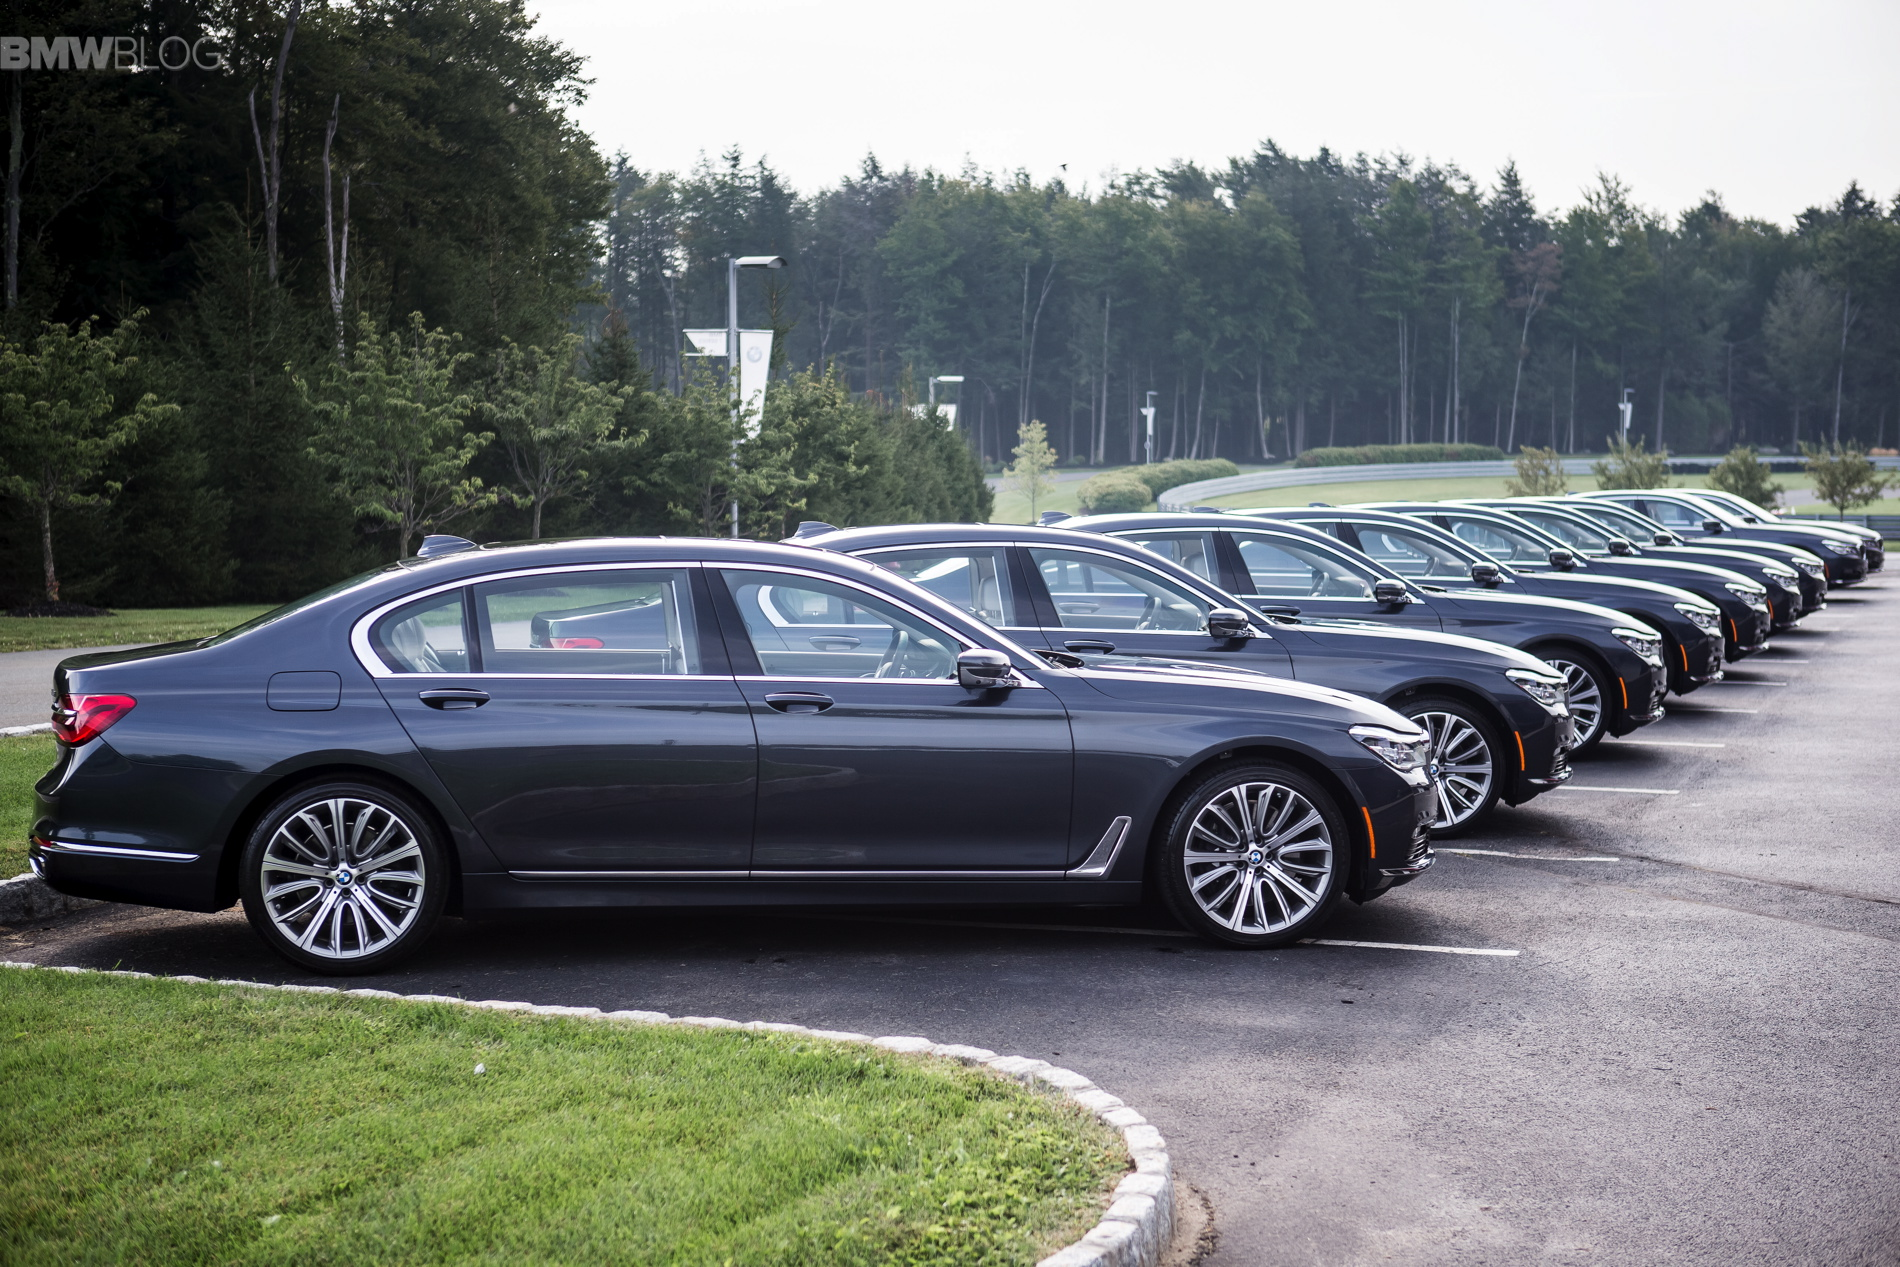 2016 bmw 7 series launch new york images 1900x 1200 102